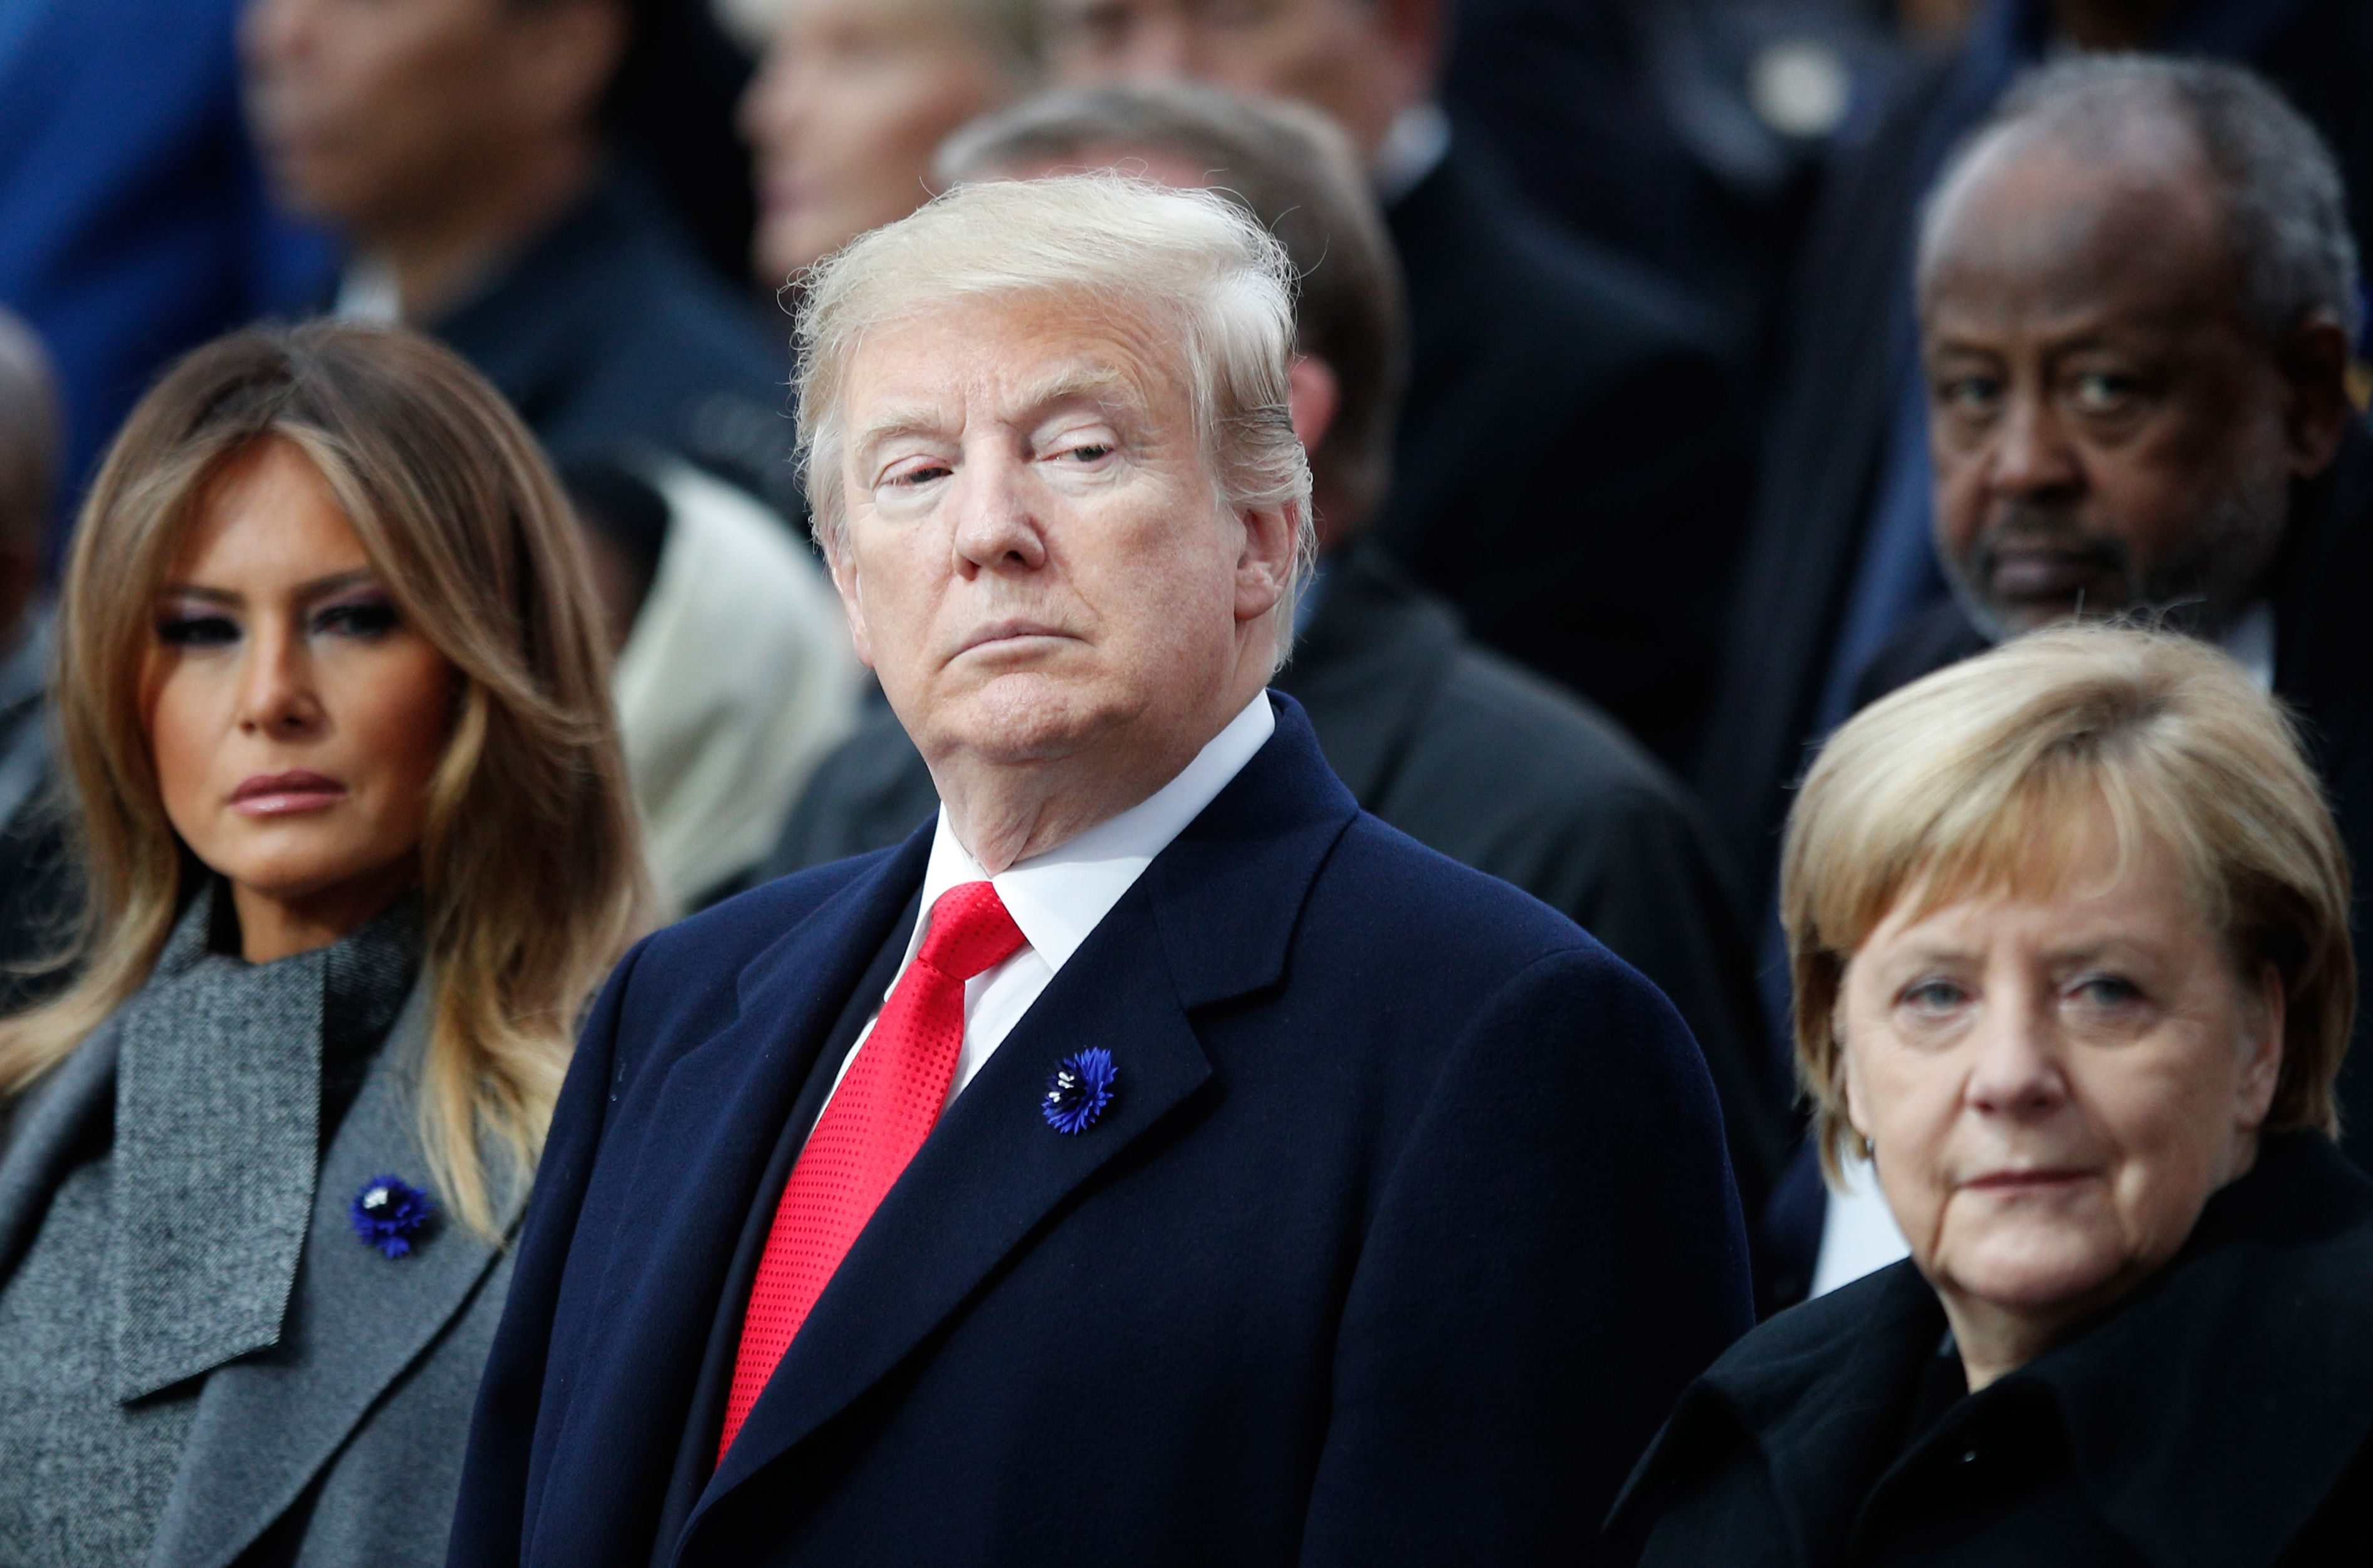 Angela Merkel Topless trump arrives at ceremony separately from other leaders